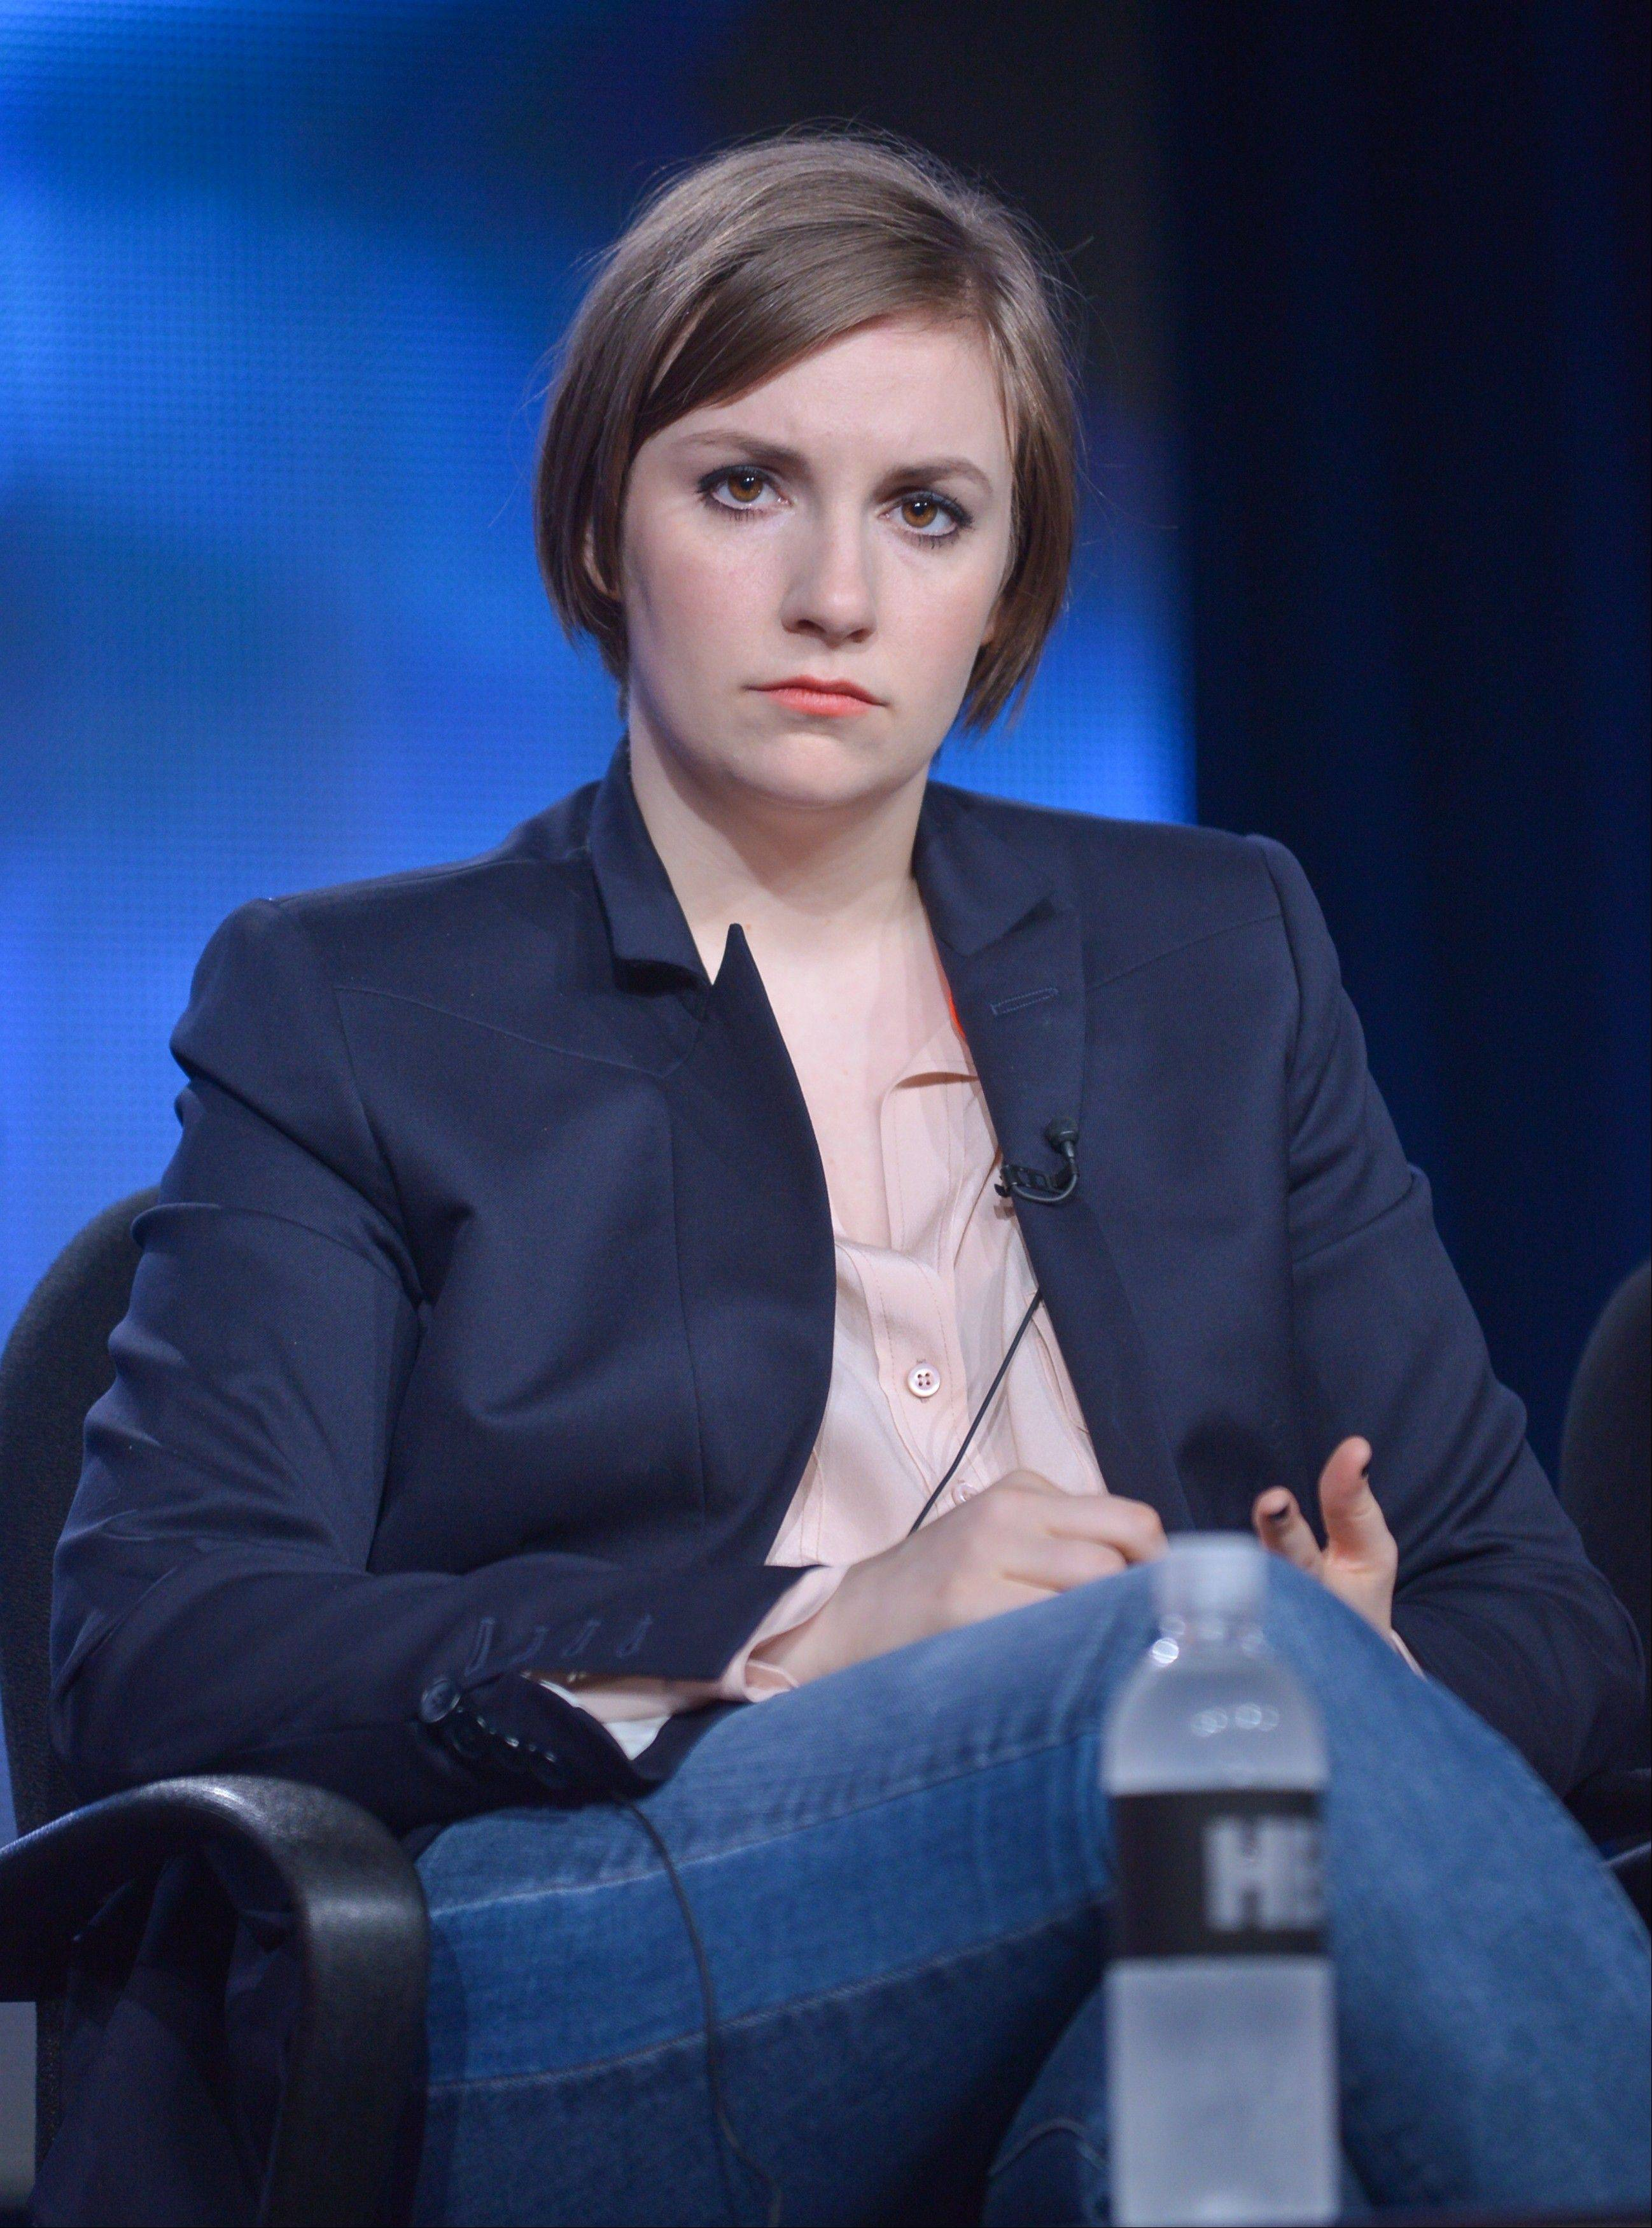 Lena Dunham on stage during the �Girls� panel discussion at the HBO portion of the 2014 Winter Television Critics Association tour at the Langham Hotel on Thursday.